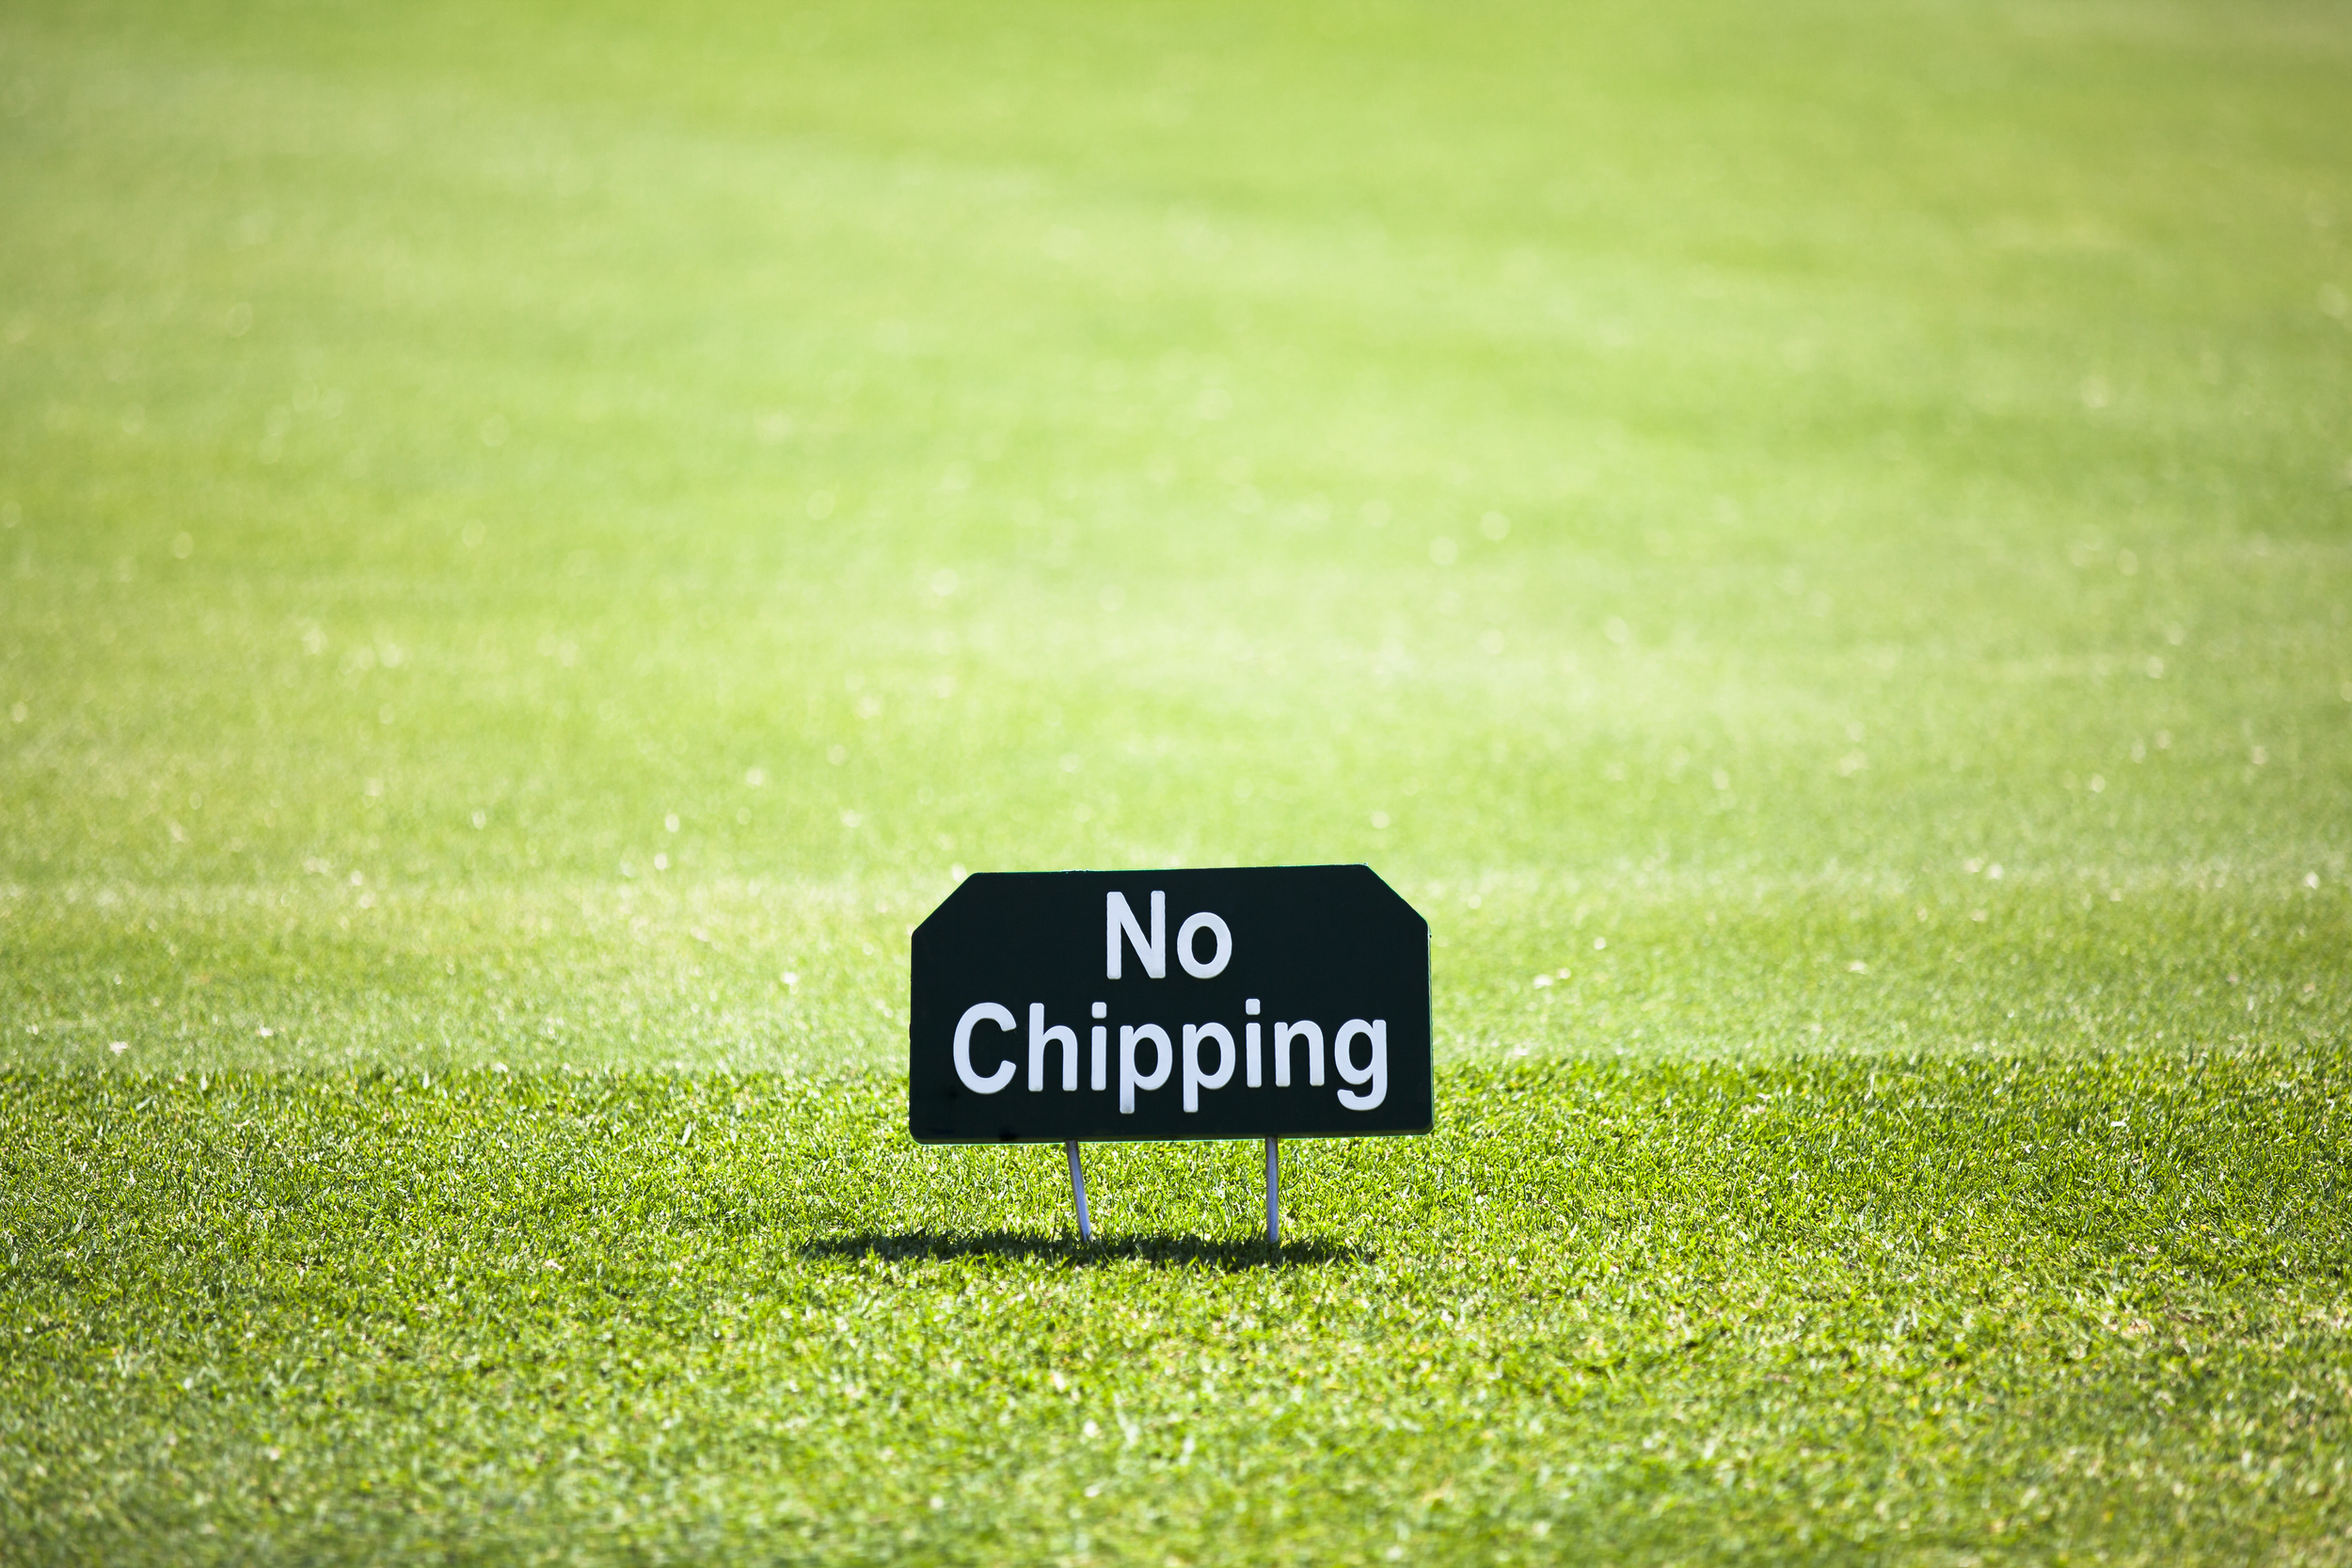 Get over the chip yips with Limitless golf based in Chesham and Amersham.